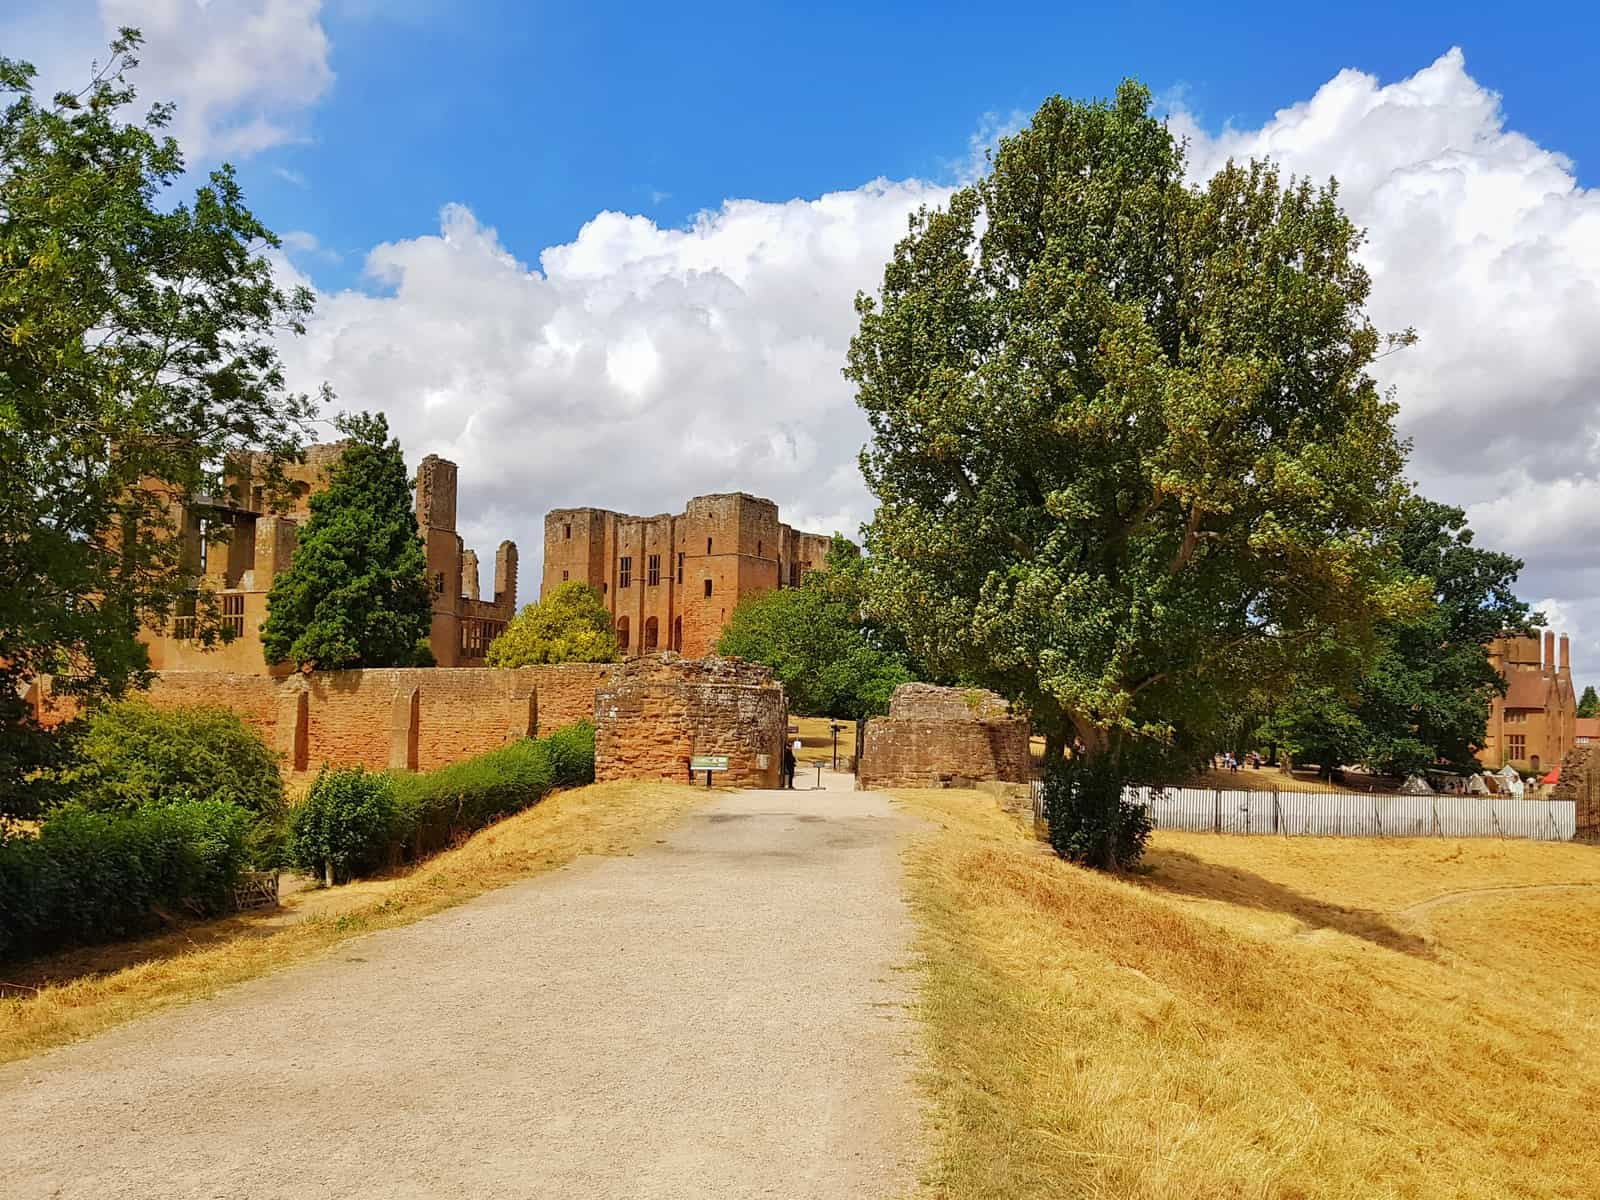 Kenilworth Castle Warwickshire exterior by public entrance